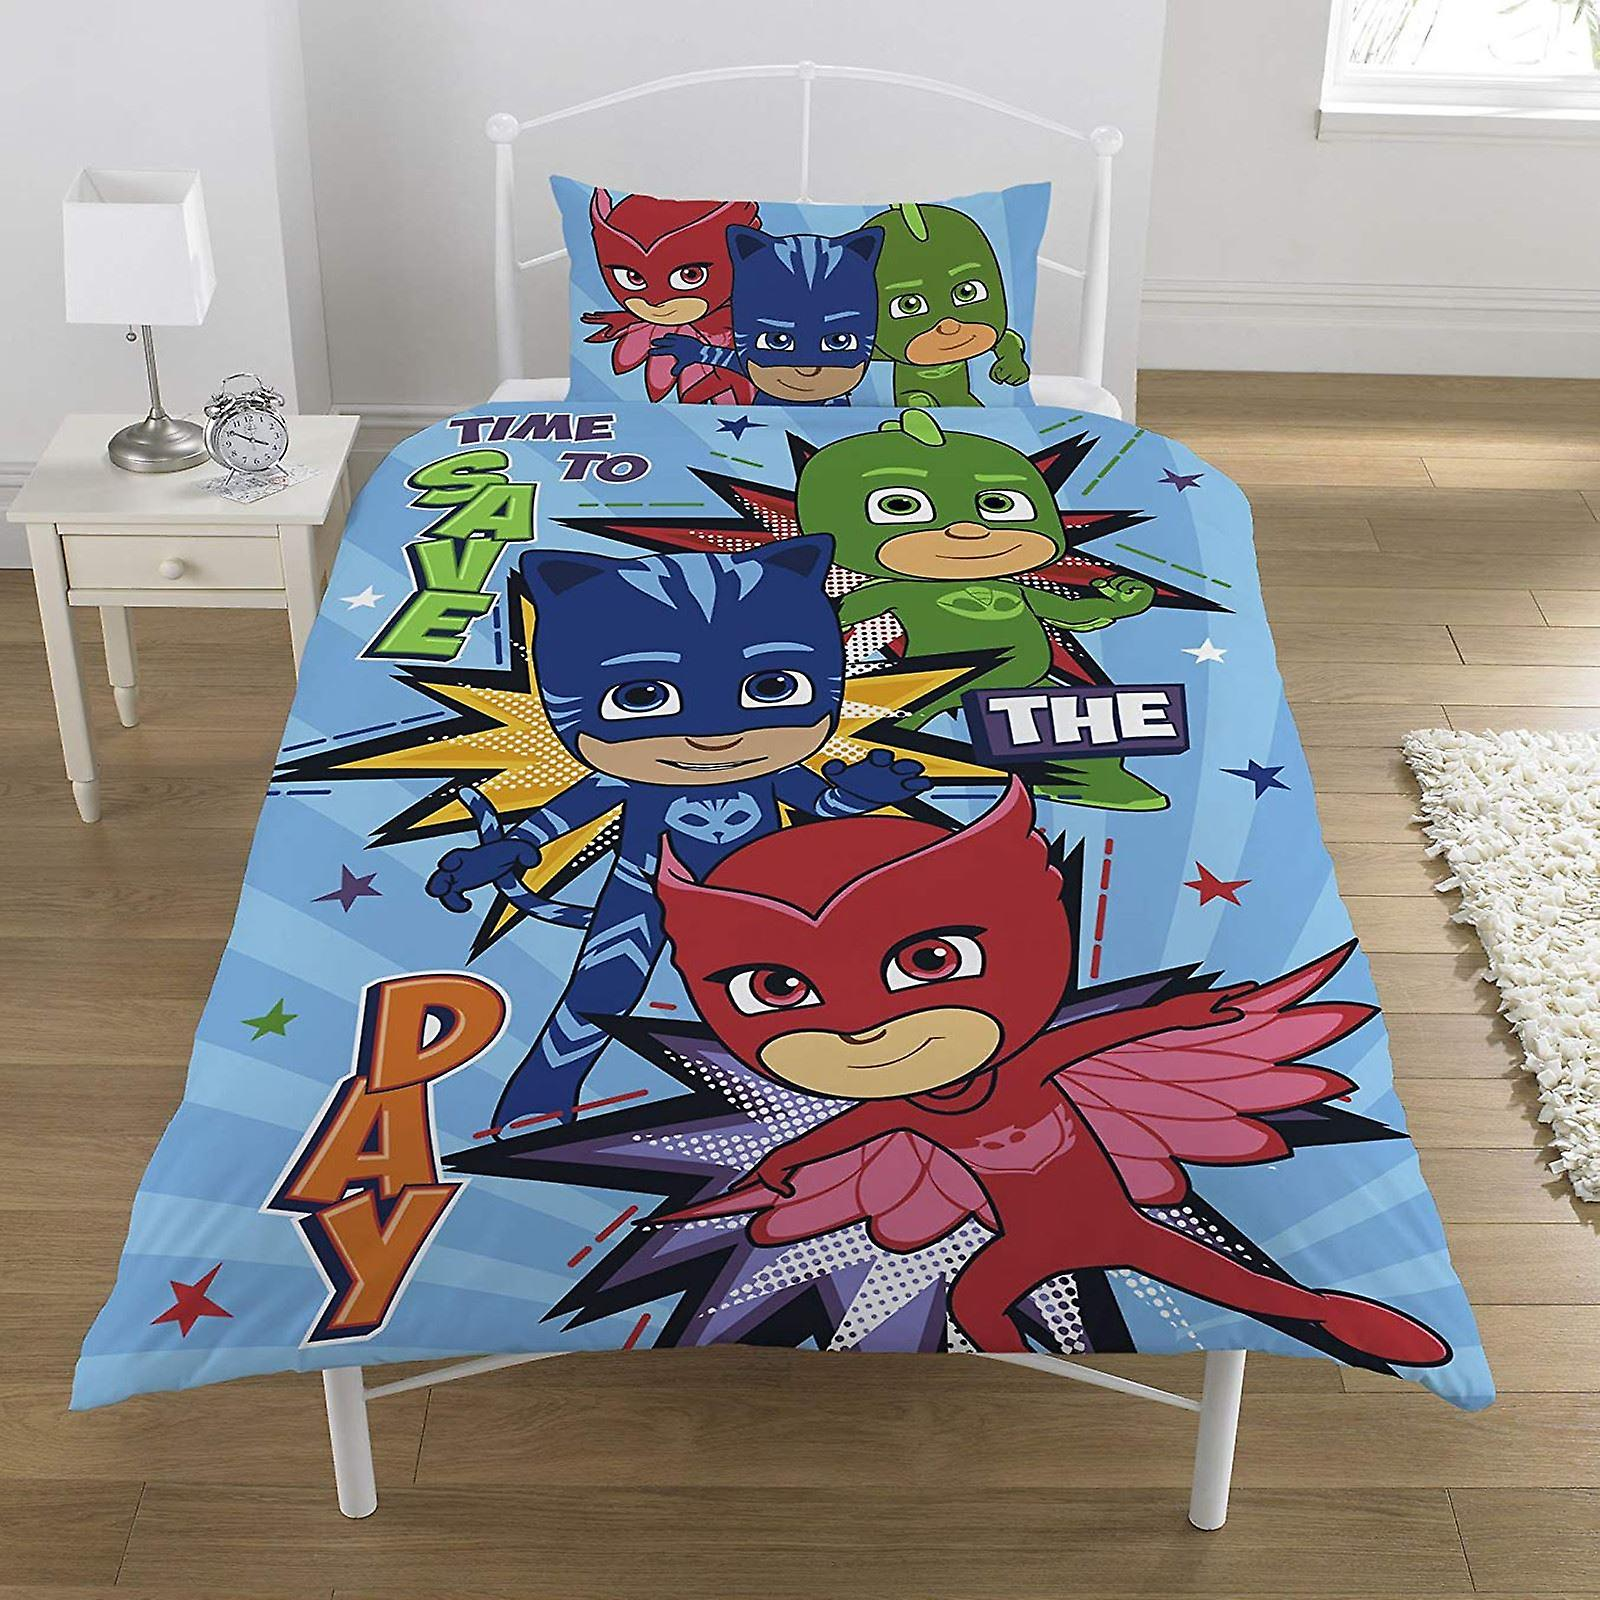 PJ Masks Save The Day Single Duvet Cover